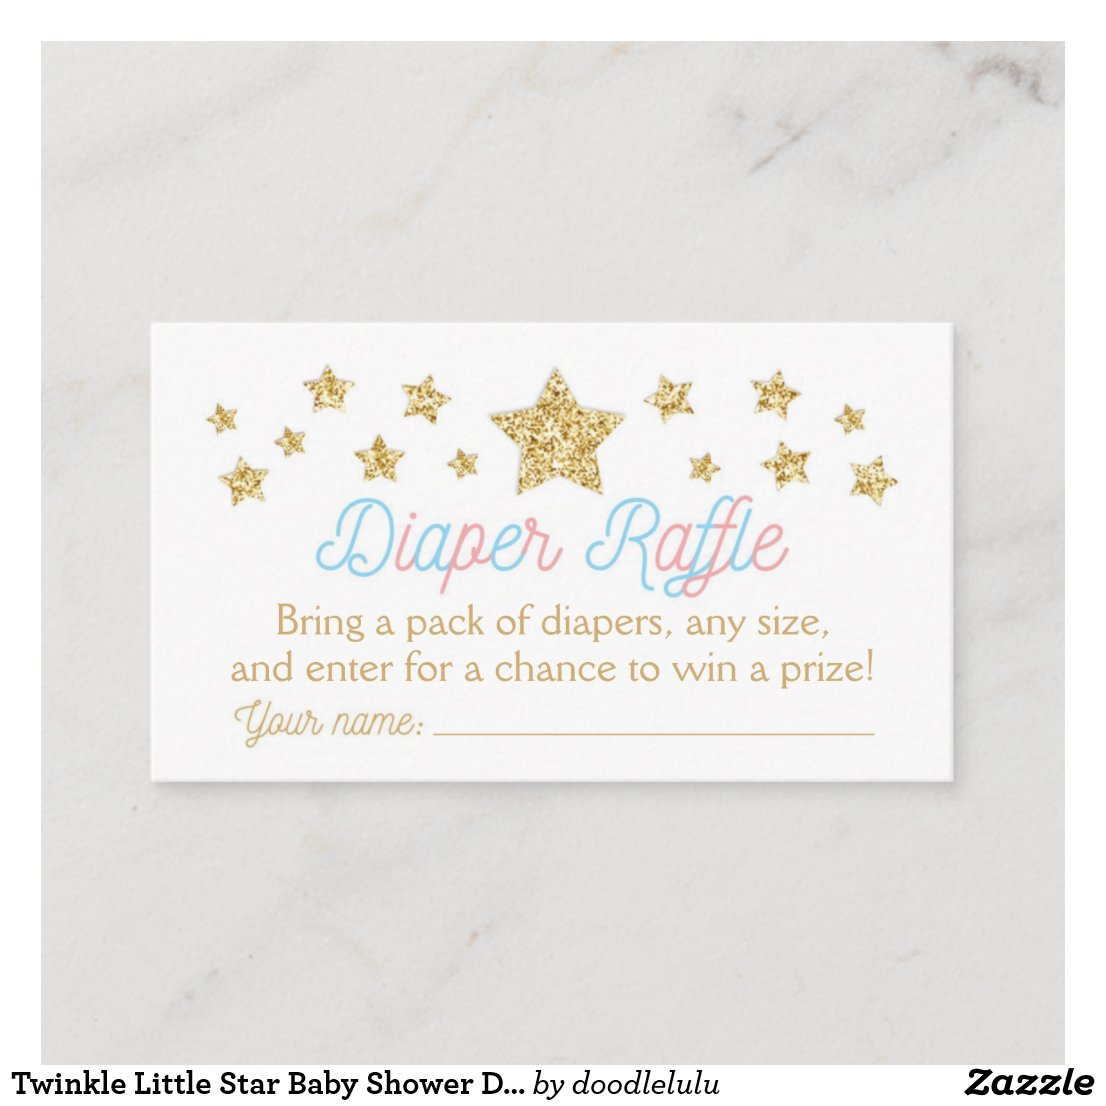 Twinkle Little Star Baby Shower Diaper Raffle Enclosure Card